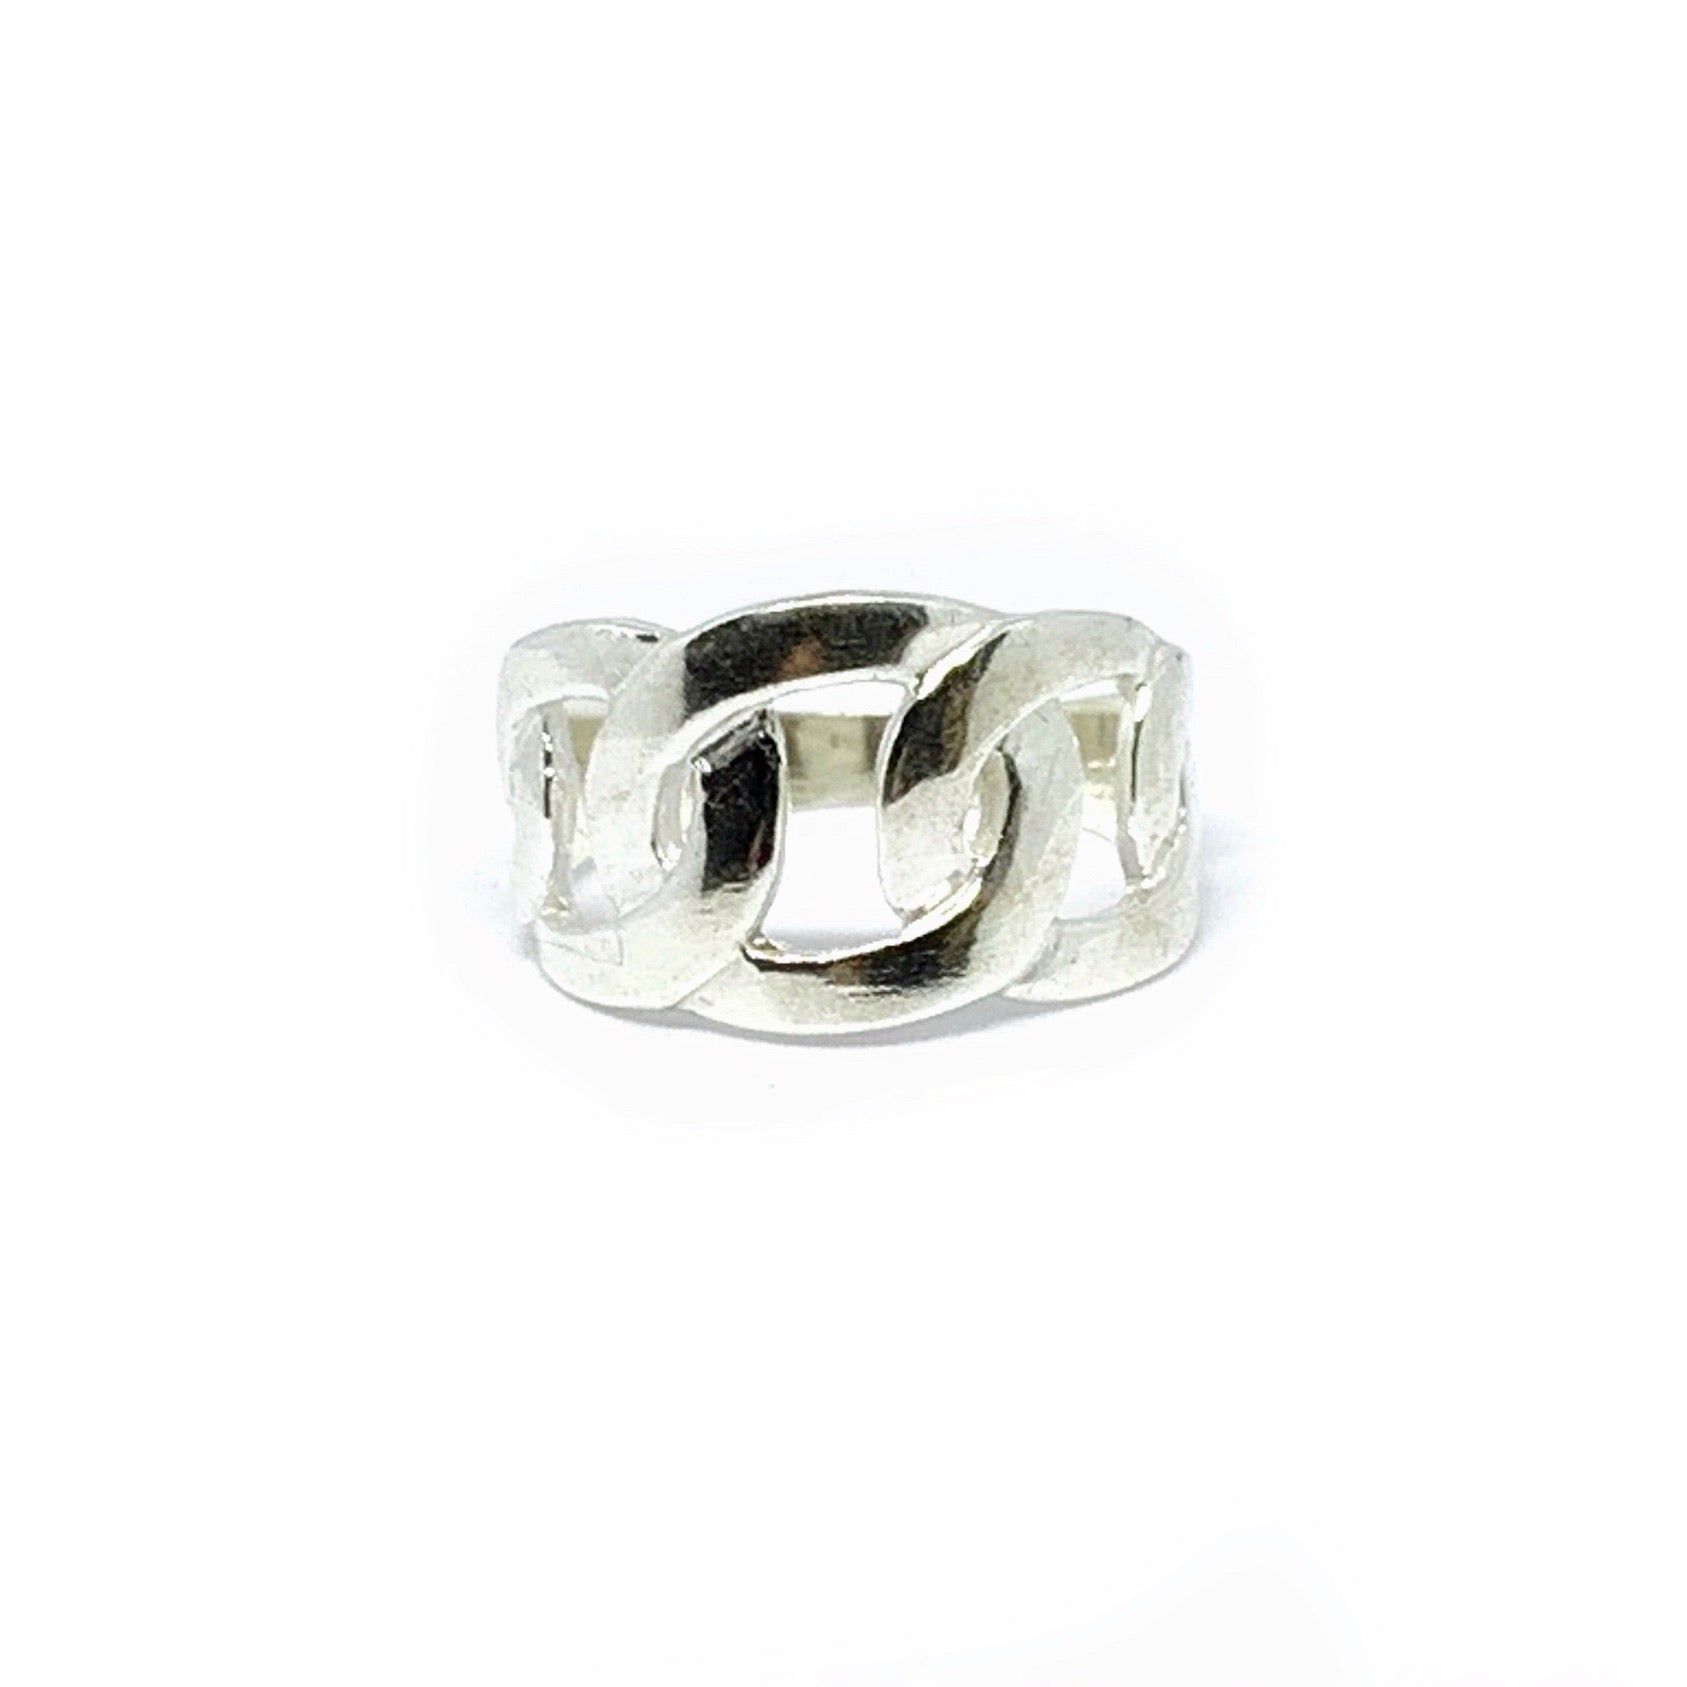 Handcrafted Sterling SIlver | Chain Link Ring | SEAMS Jewelry